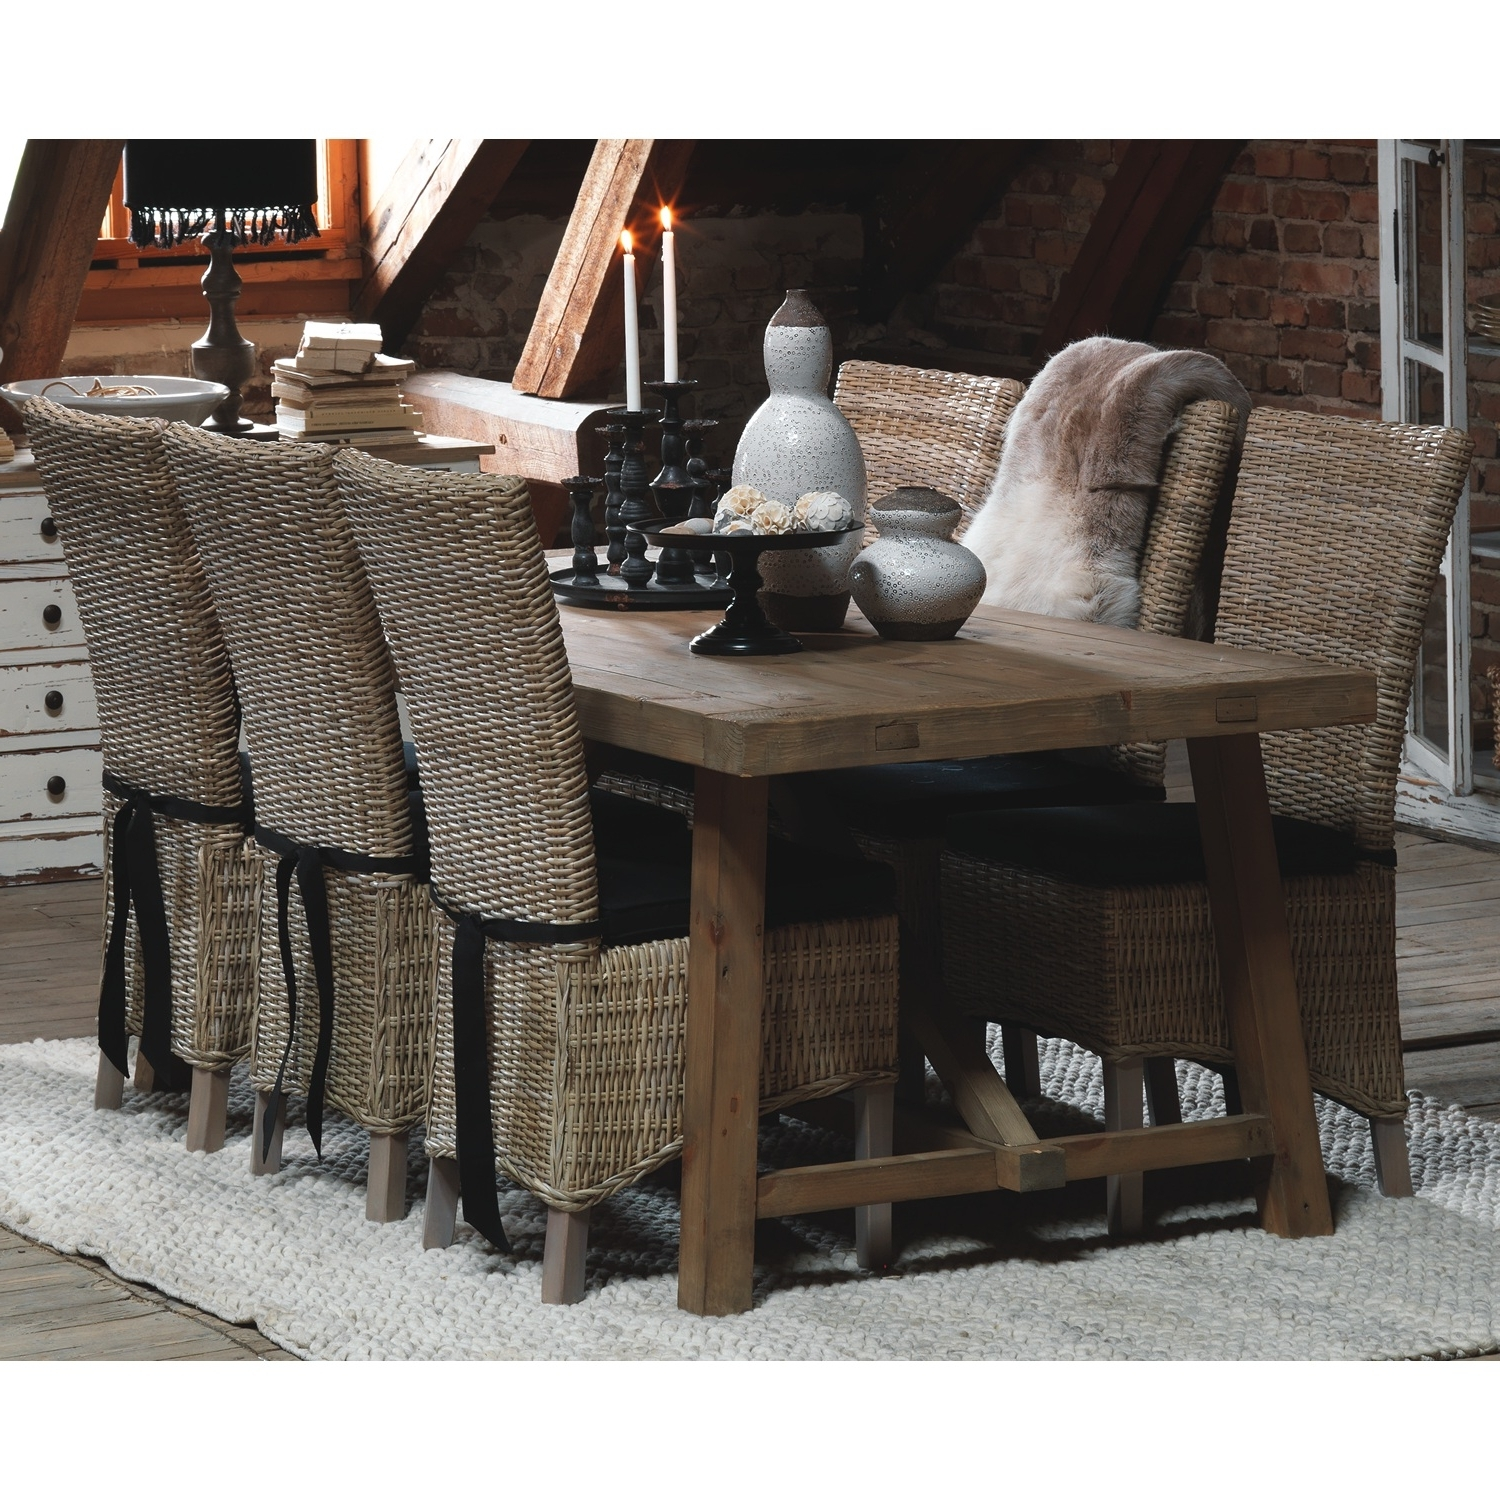 Home Decor Pertaining To Rattan Dining Tables And Chairs (View 11 of 25)